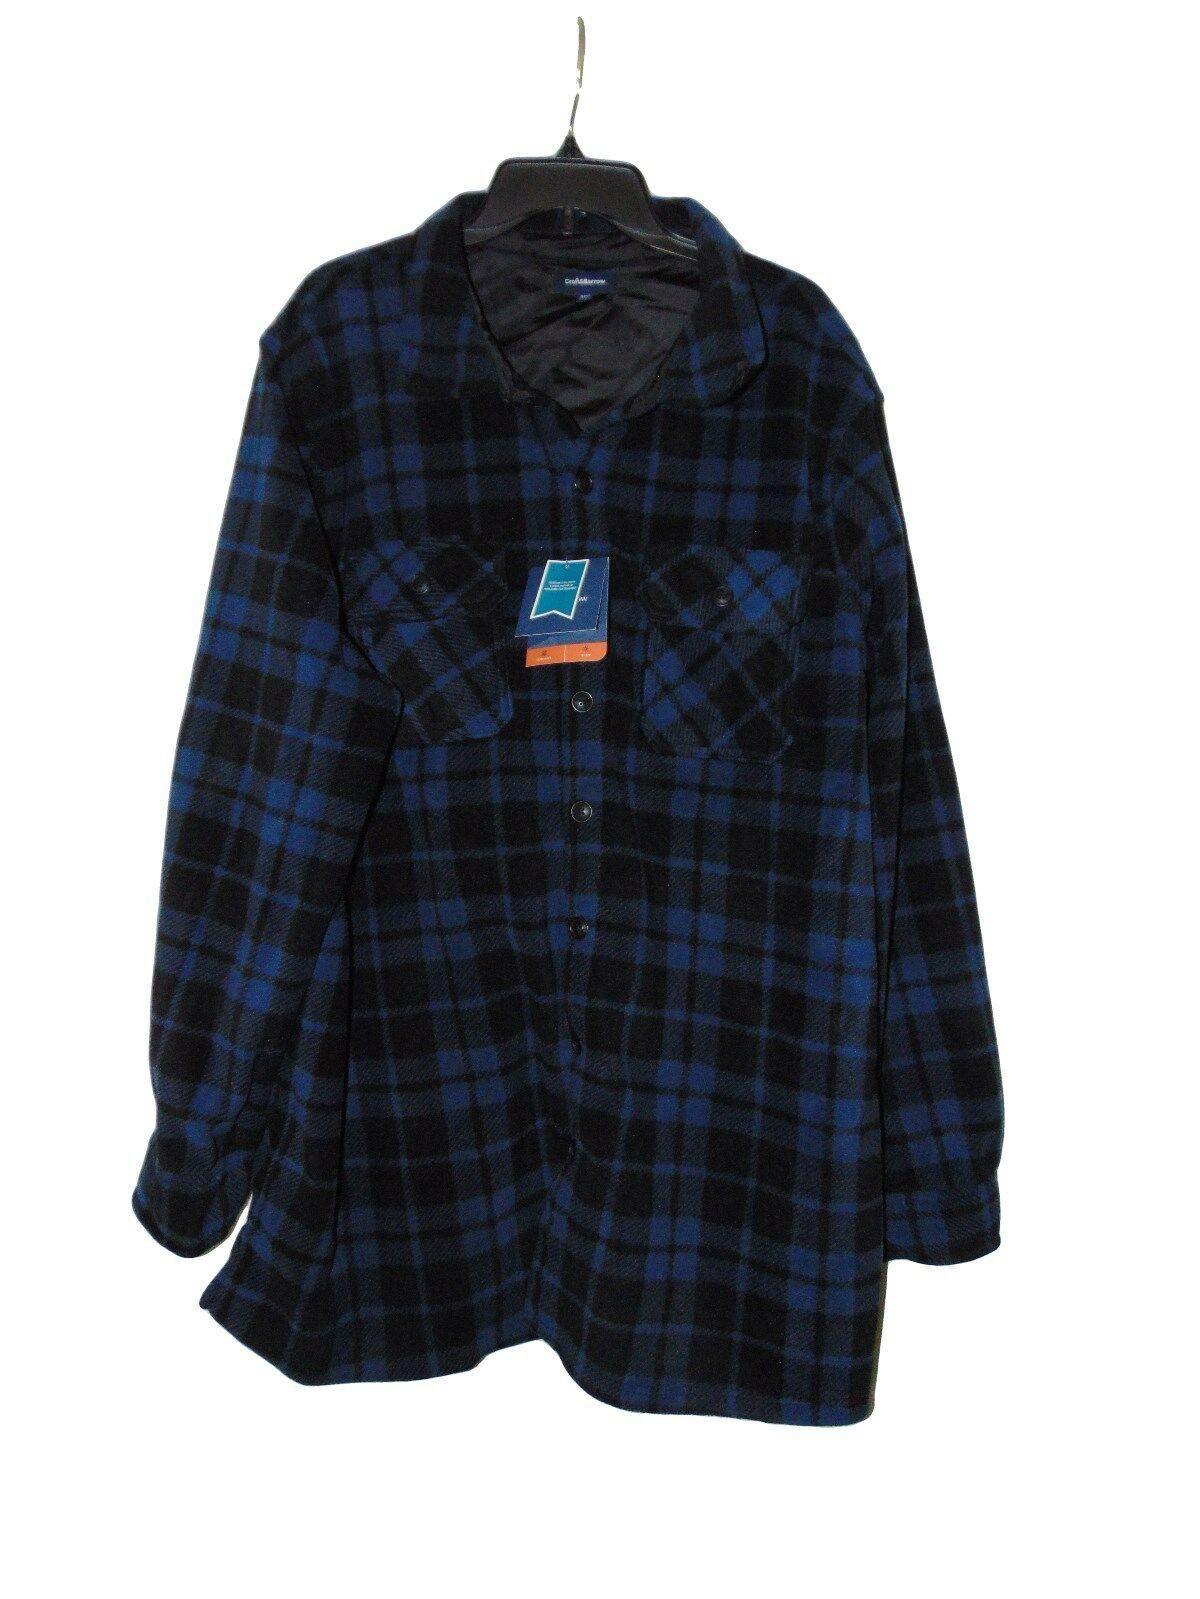 9b6585525c Croft And Barrow Heavy Flannel Shirt Jacket and 50 similar items. S l1600